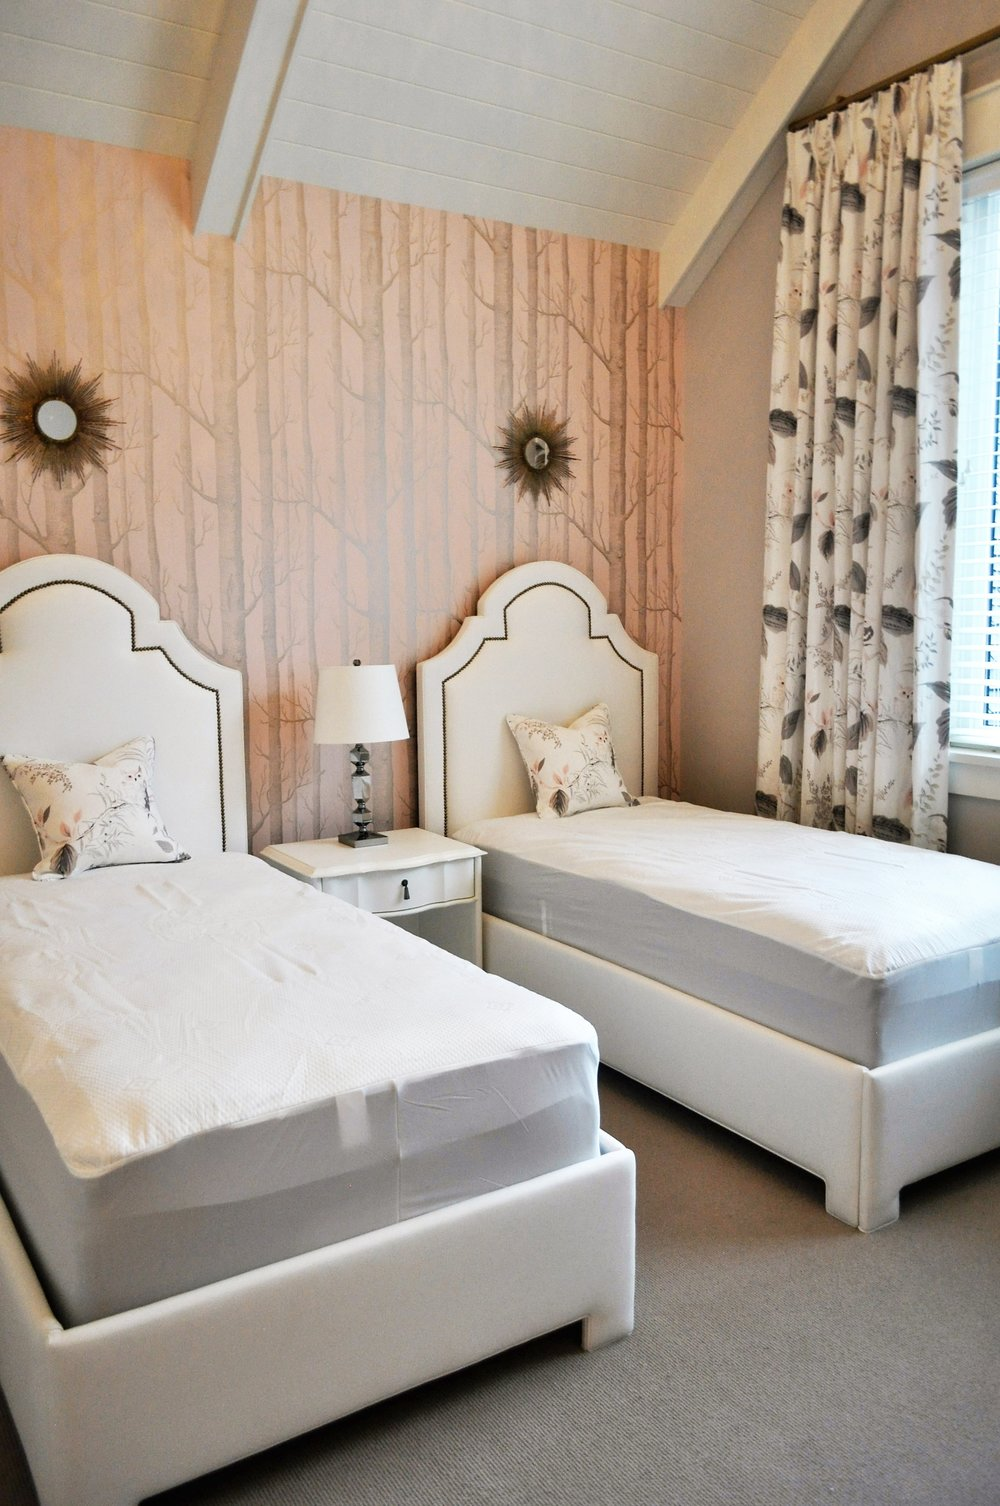 Twin Beds with Nailed Headboard